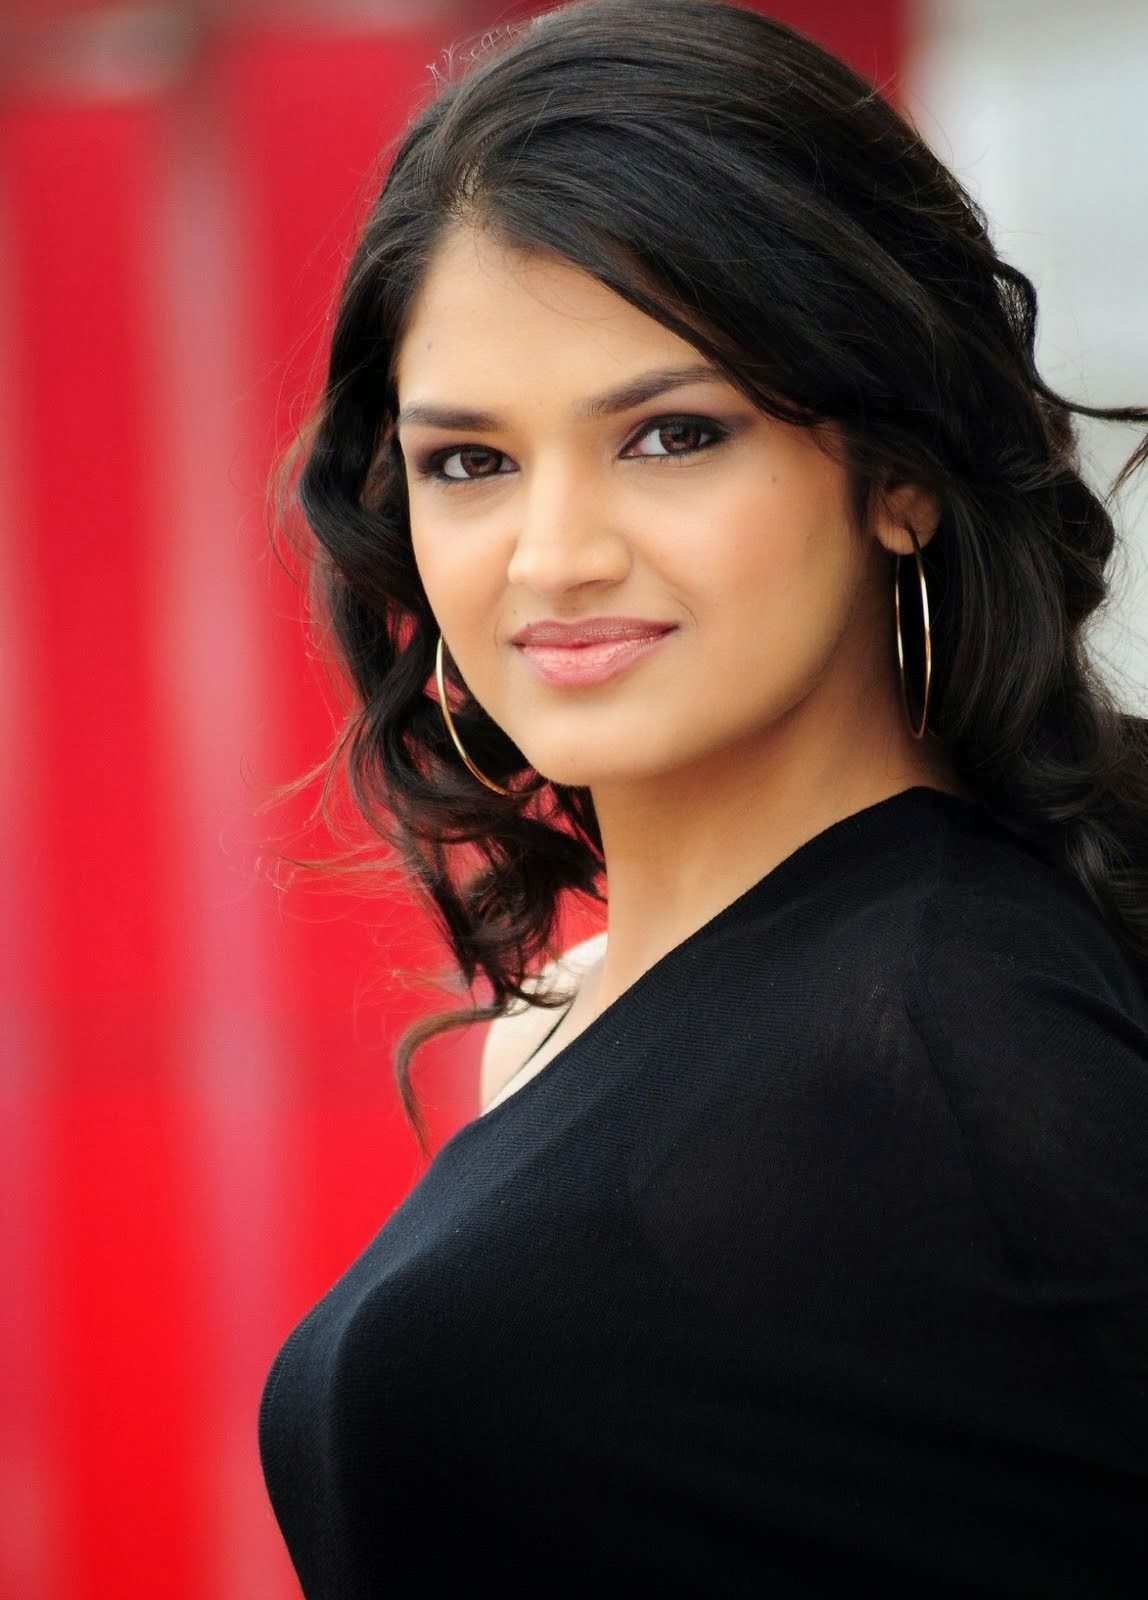 HD Actress Wallpapers For Mobile